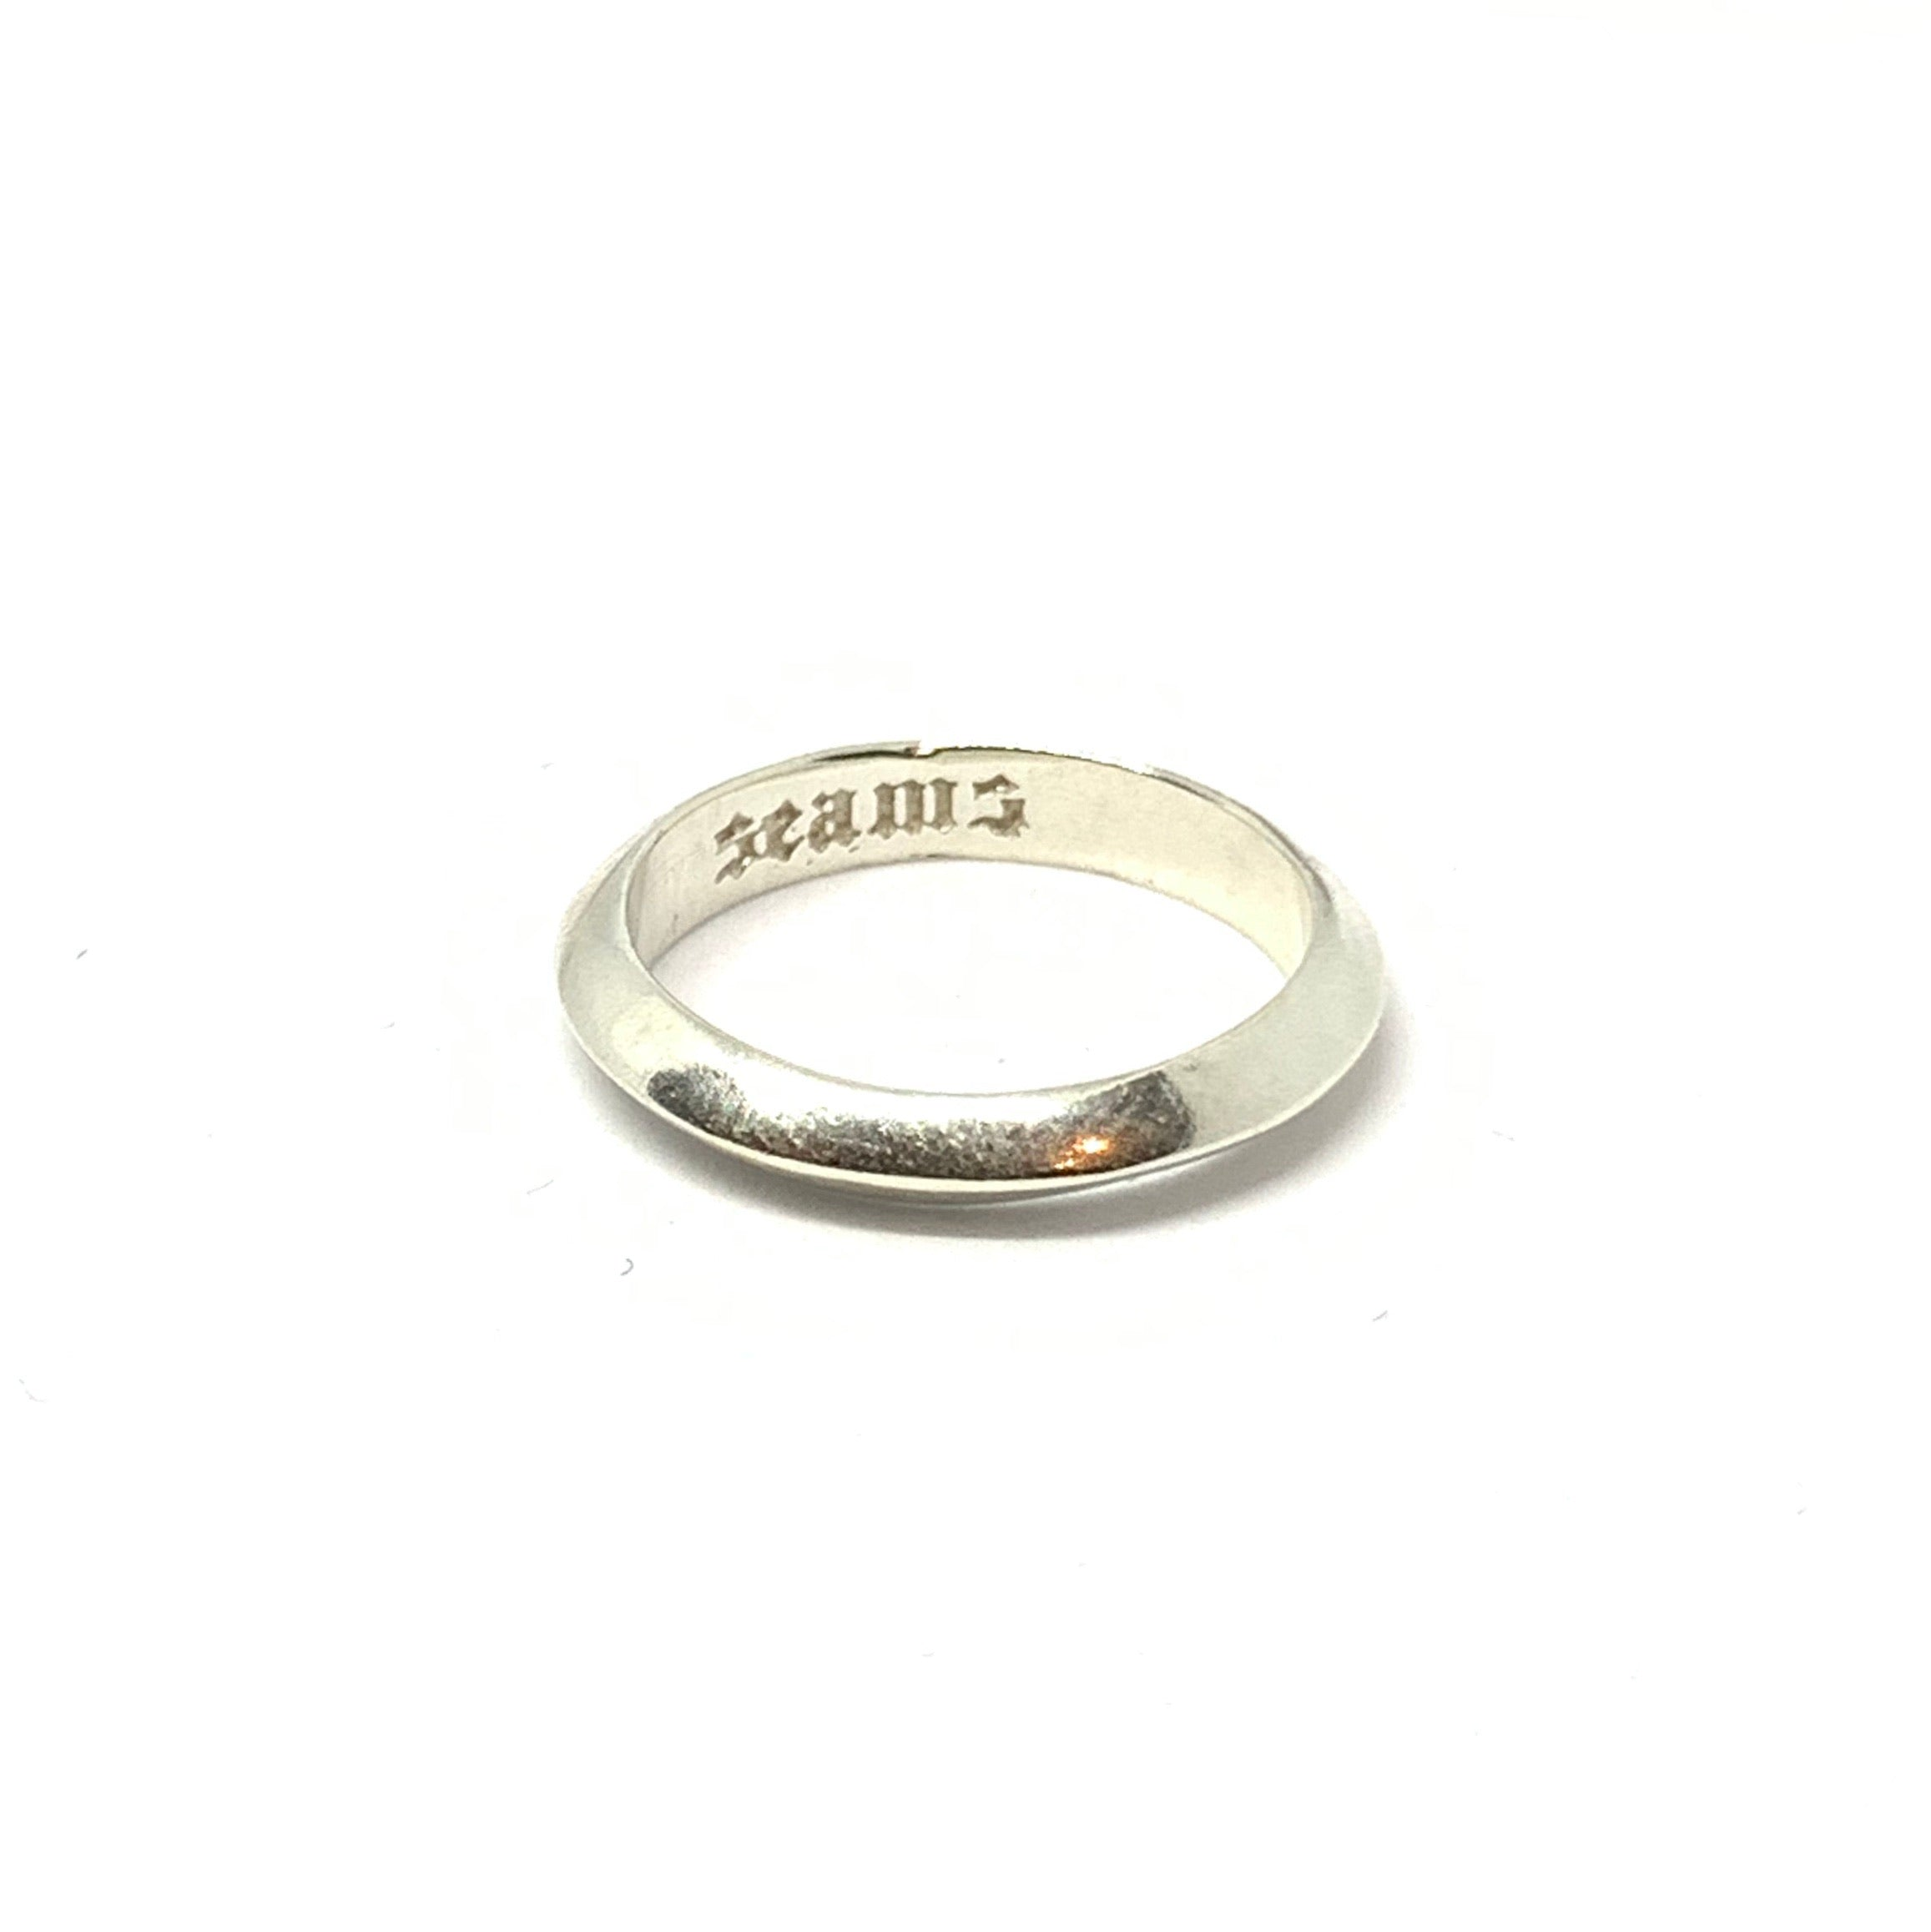 Handcrafted Sterling Silver | UFO Ring | SEAMS Jewelry